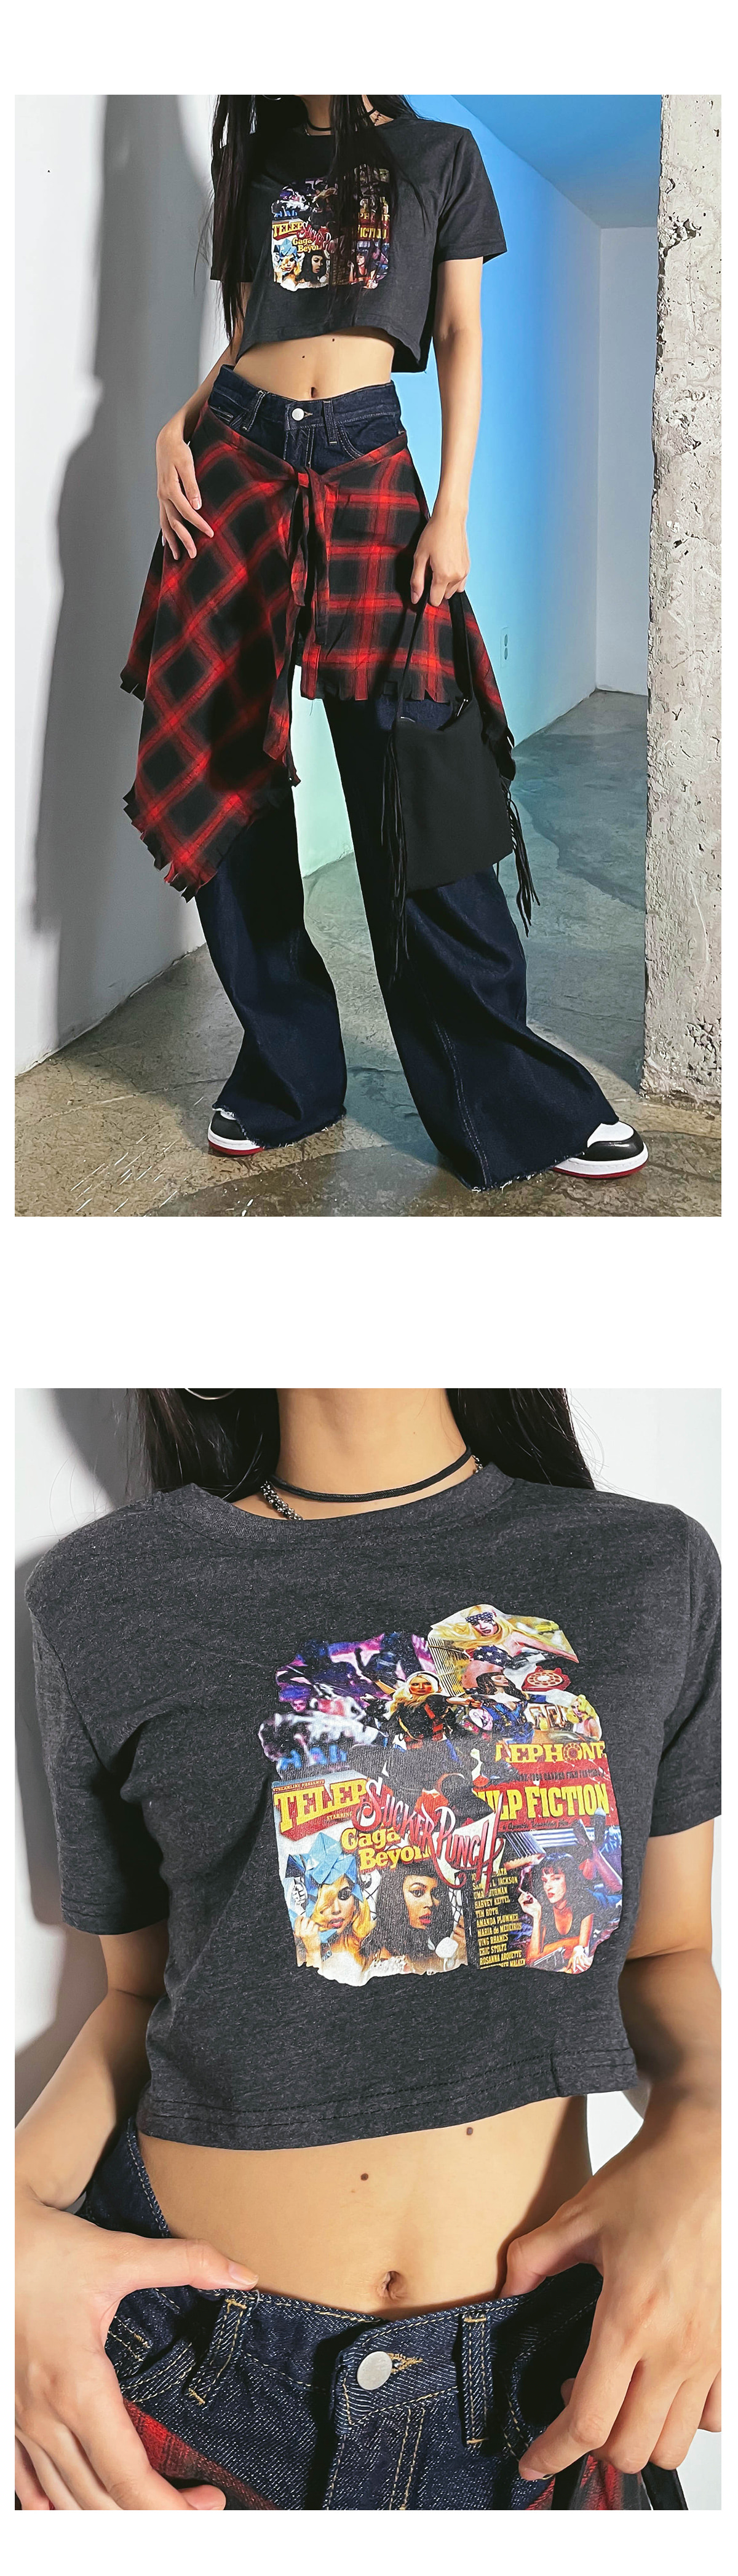 printed by cropped t-shirt